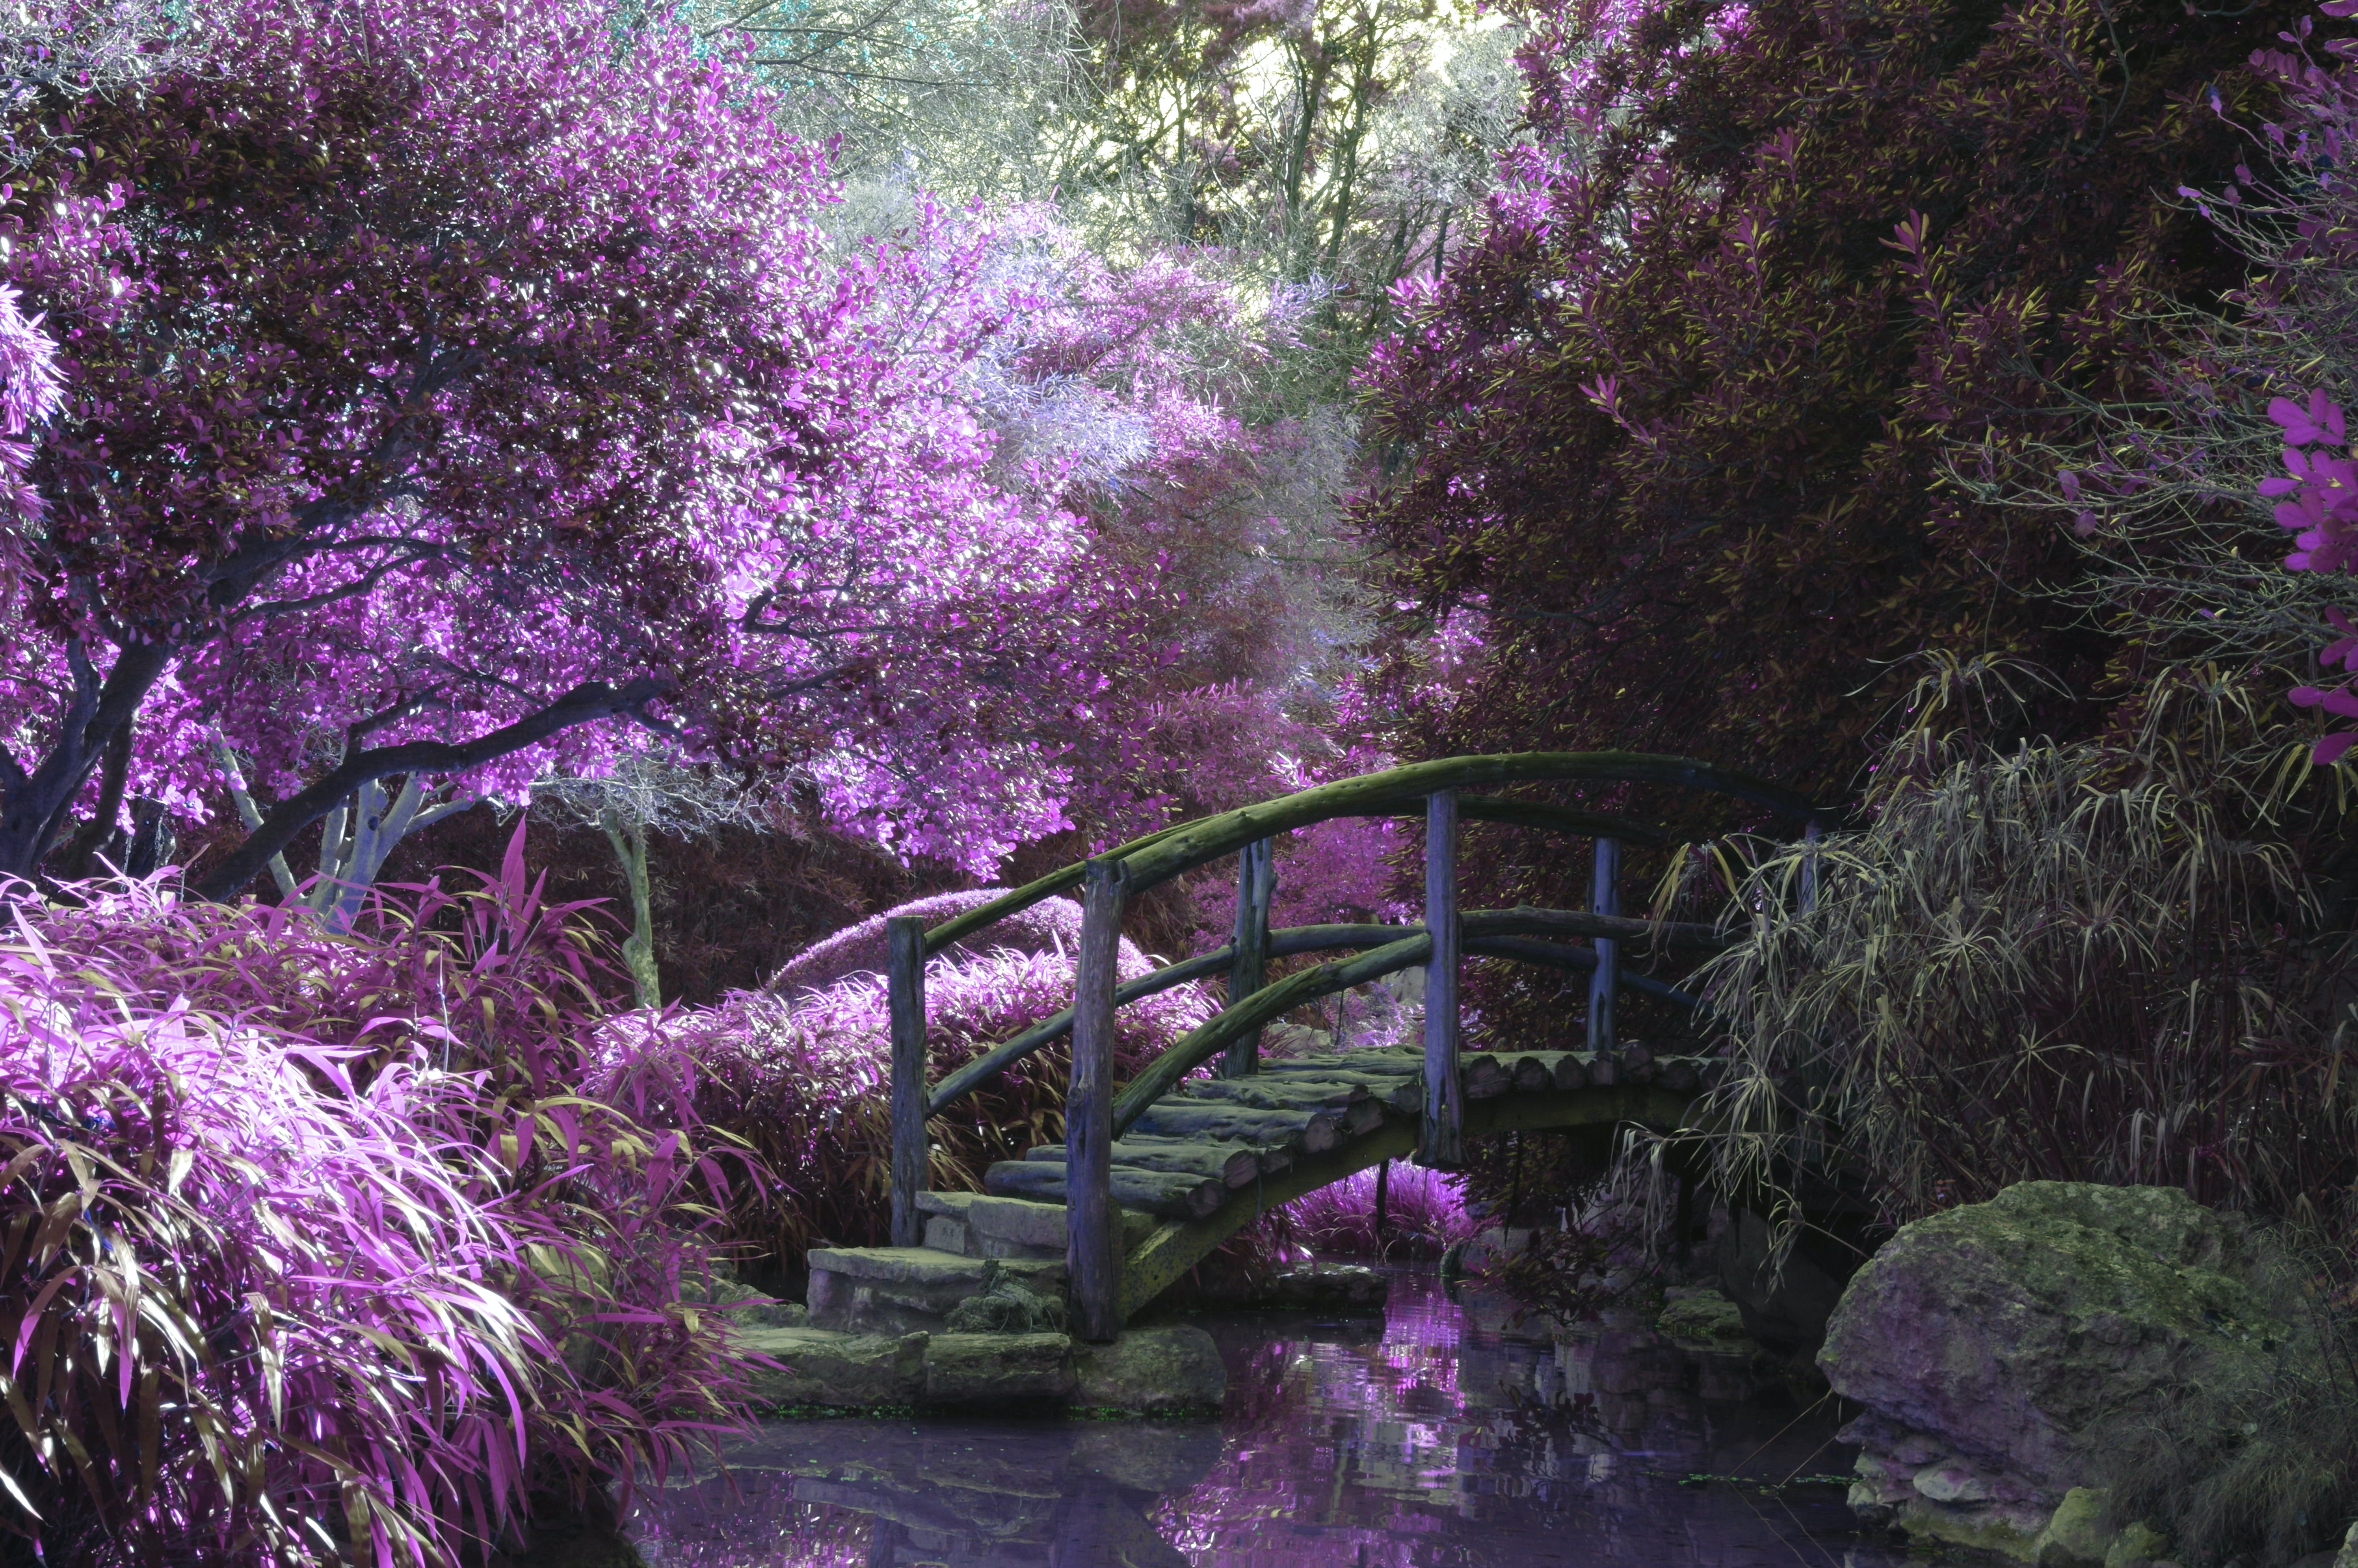 A magnificent garden with a wooden bridge among purple-flowered trees and grasses